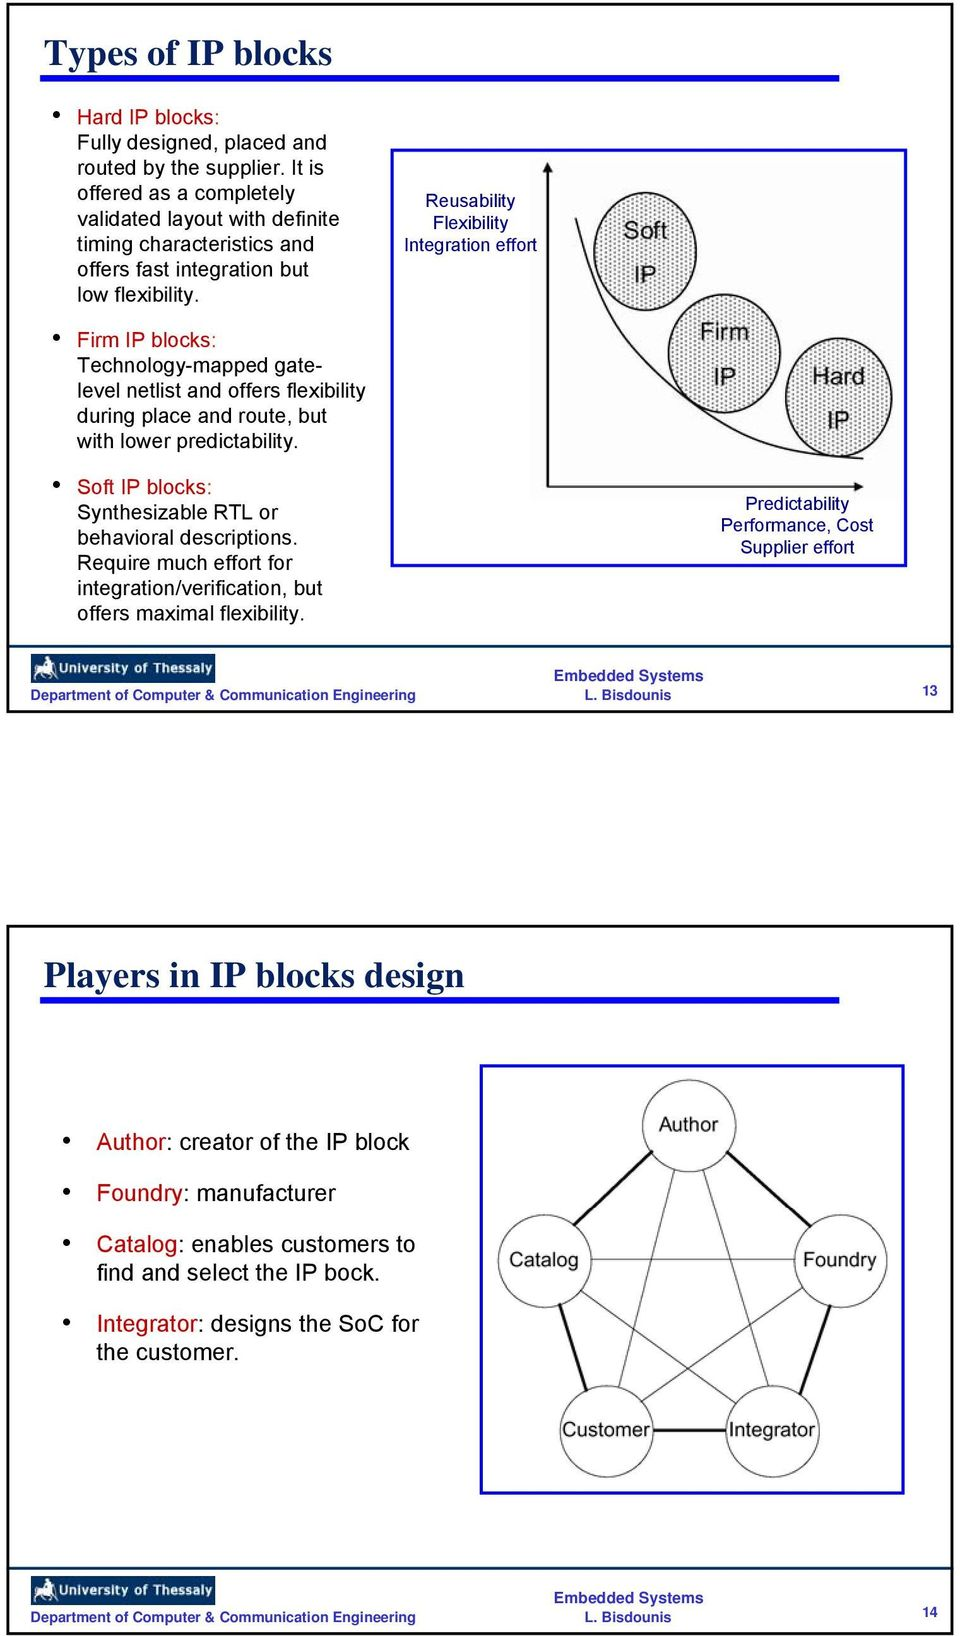 Reusability Flexibility Integration effort Firm IP blocks: Technology-mapped gatelevel netlist and offers flexibility during place and route, but with lower predictability.